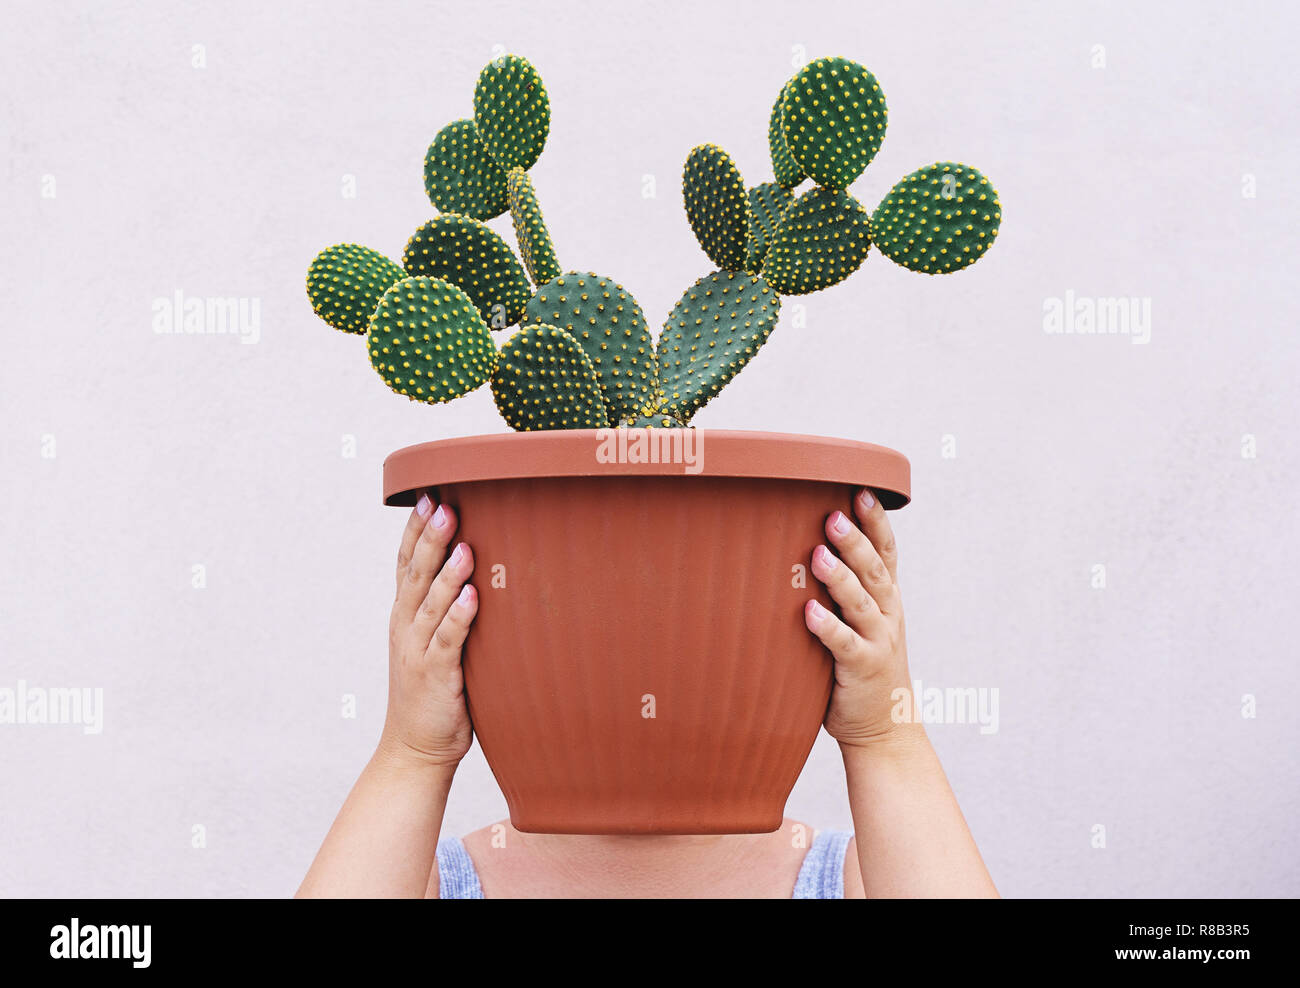 Woman is holding large red pot with Opuntia cactus at face level. Conceptual realism faceless portrait - Stock Image